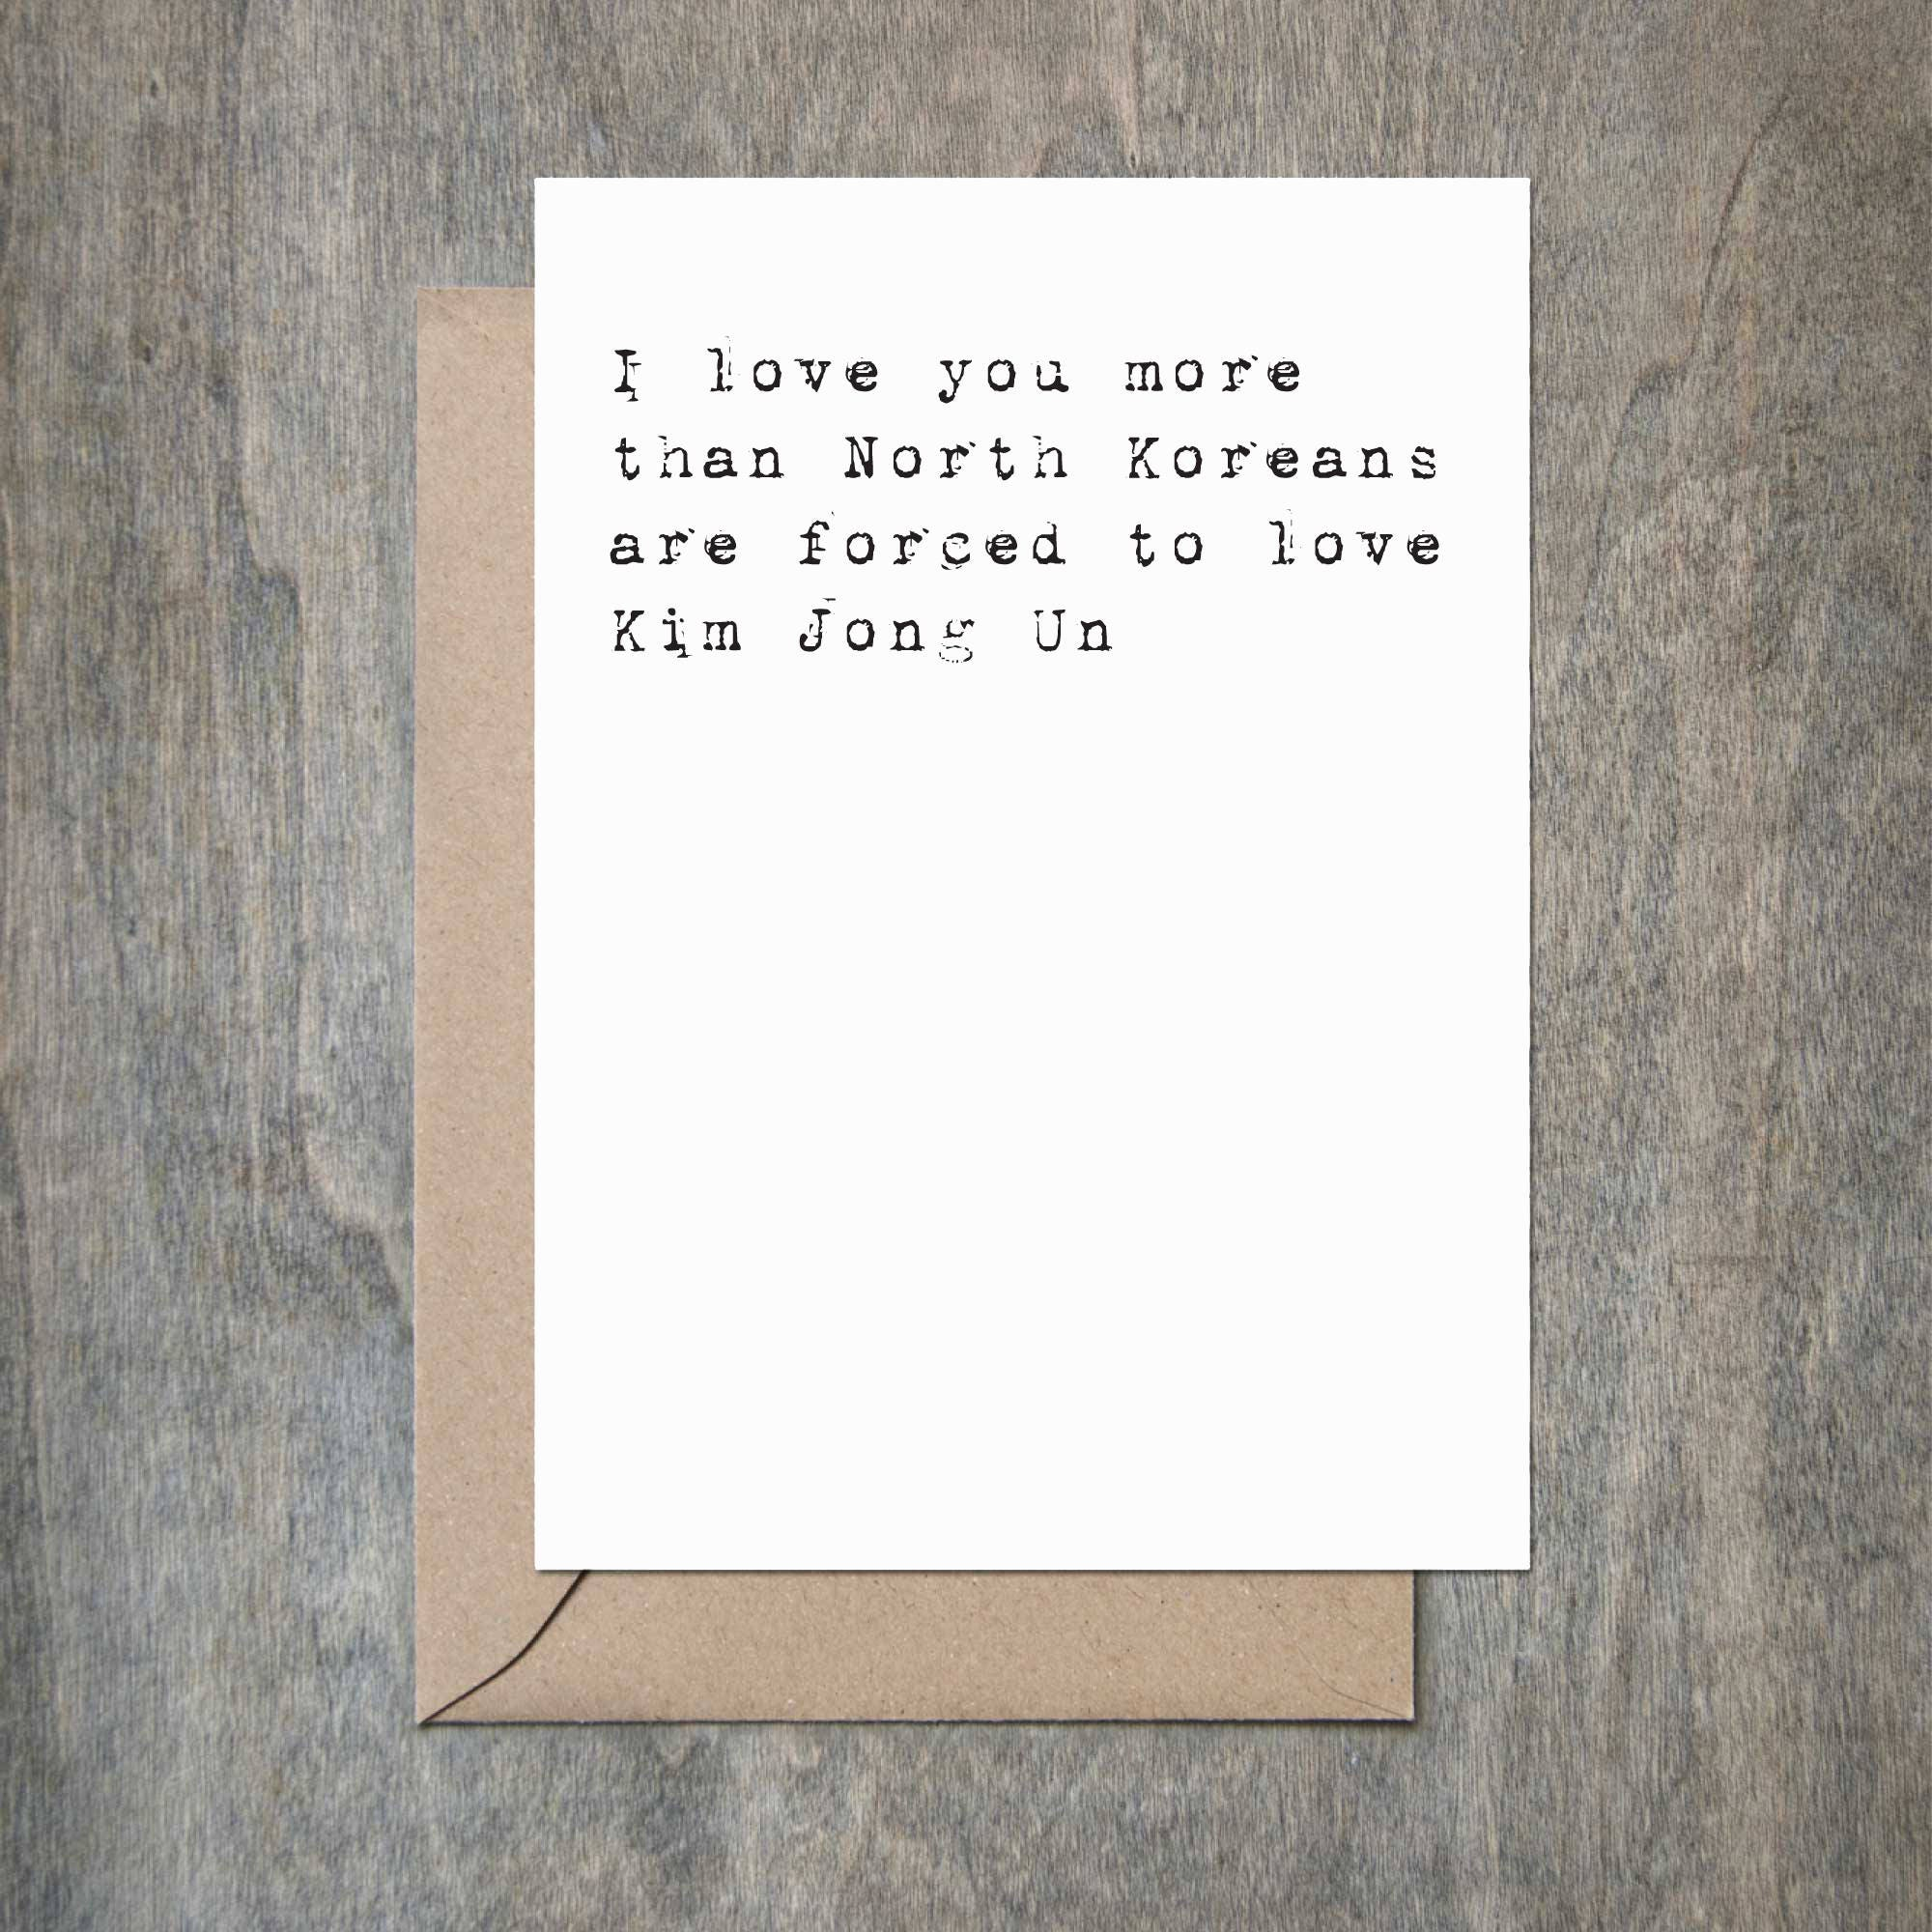 07b10cec7945b I Love You More Than North Koreans Are Forced to Love Kim Jong Un.  Valentine's Day Card. Love Card. A Funny Love Card. Funny Valentine Card.